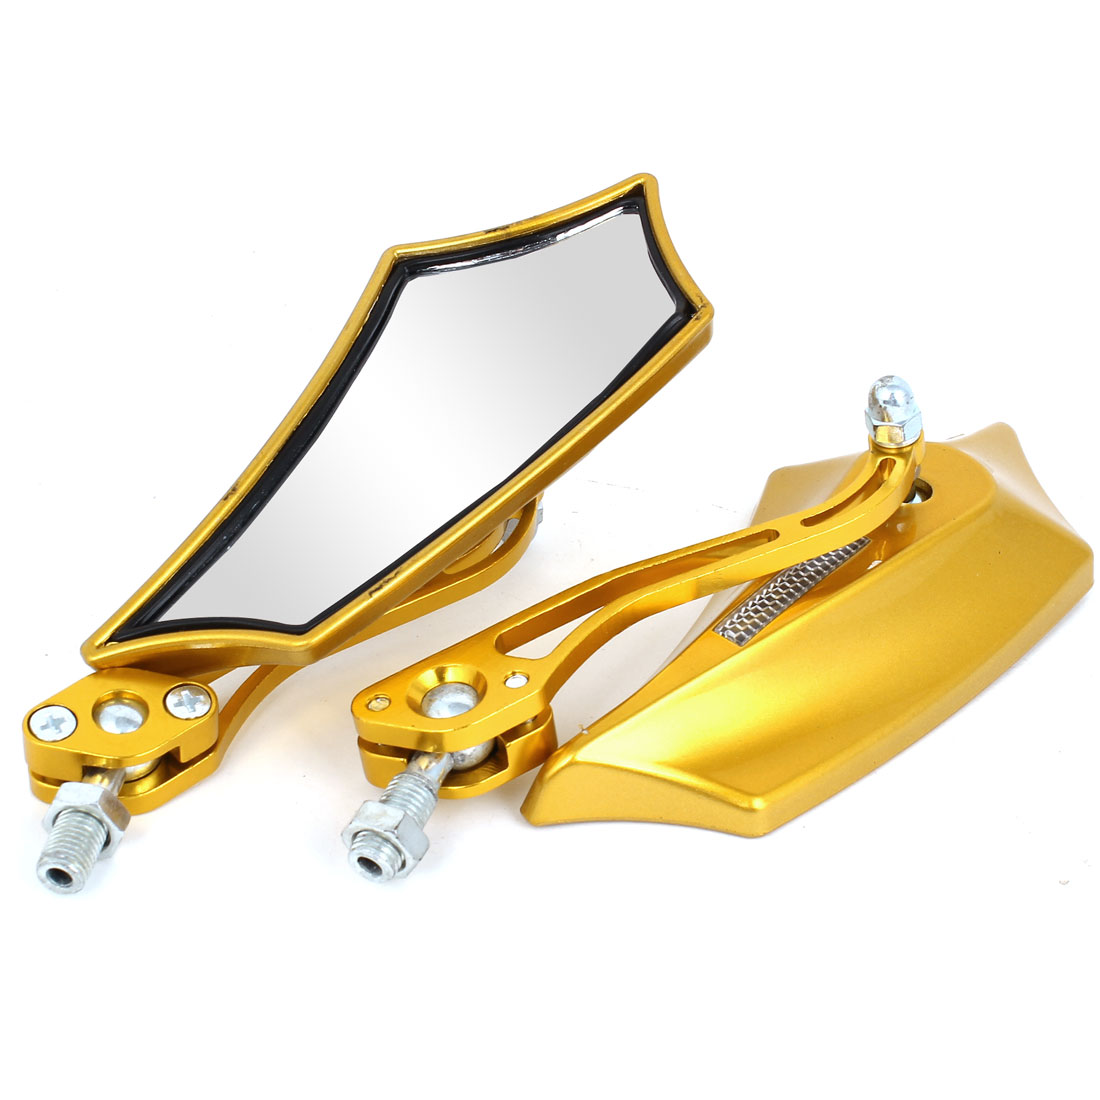 2 Pcs Gold Tone Metal Shell Shape Motorcycle Rearview Mirror